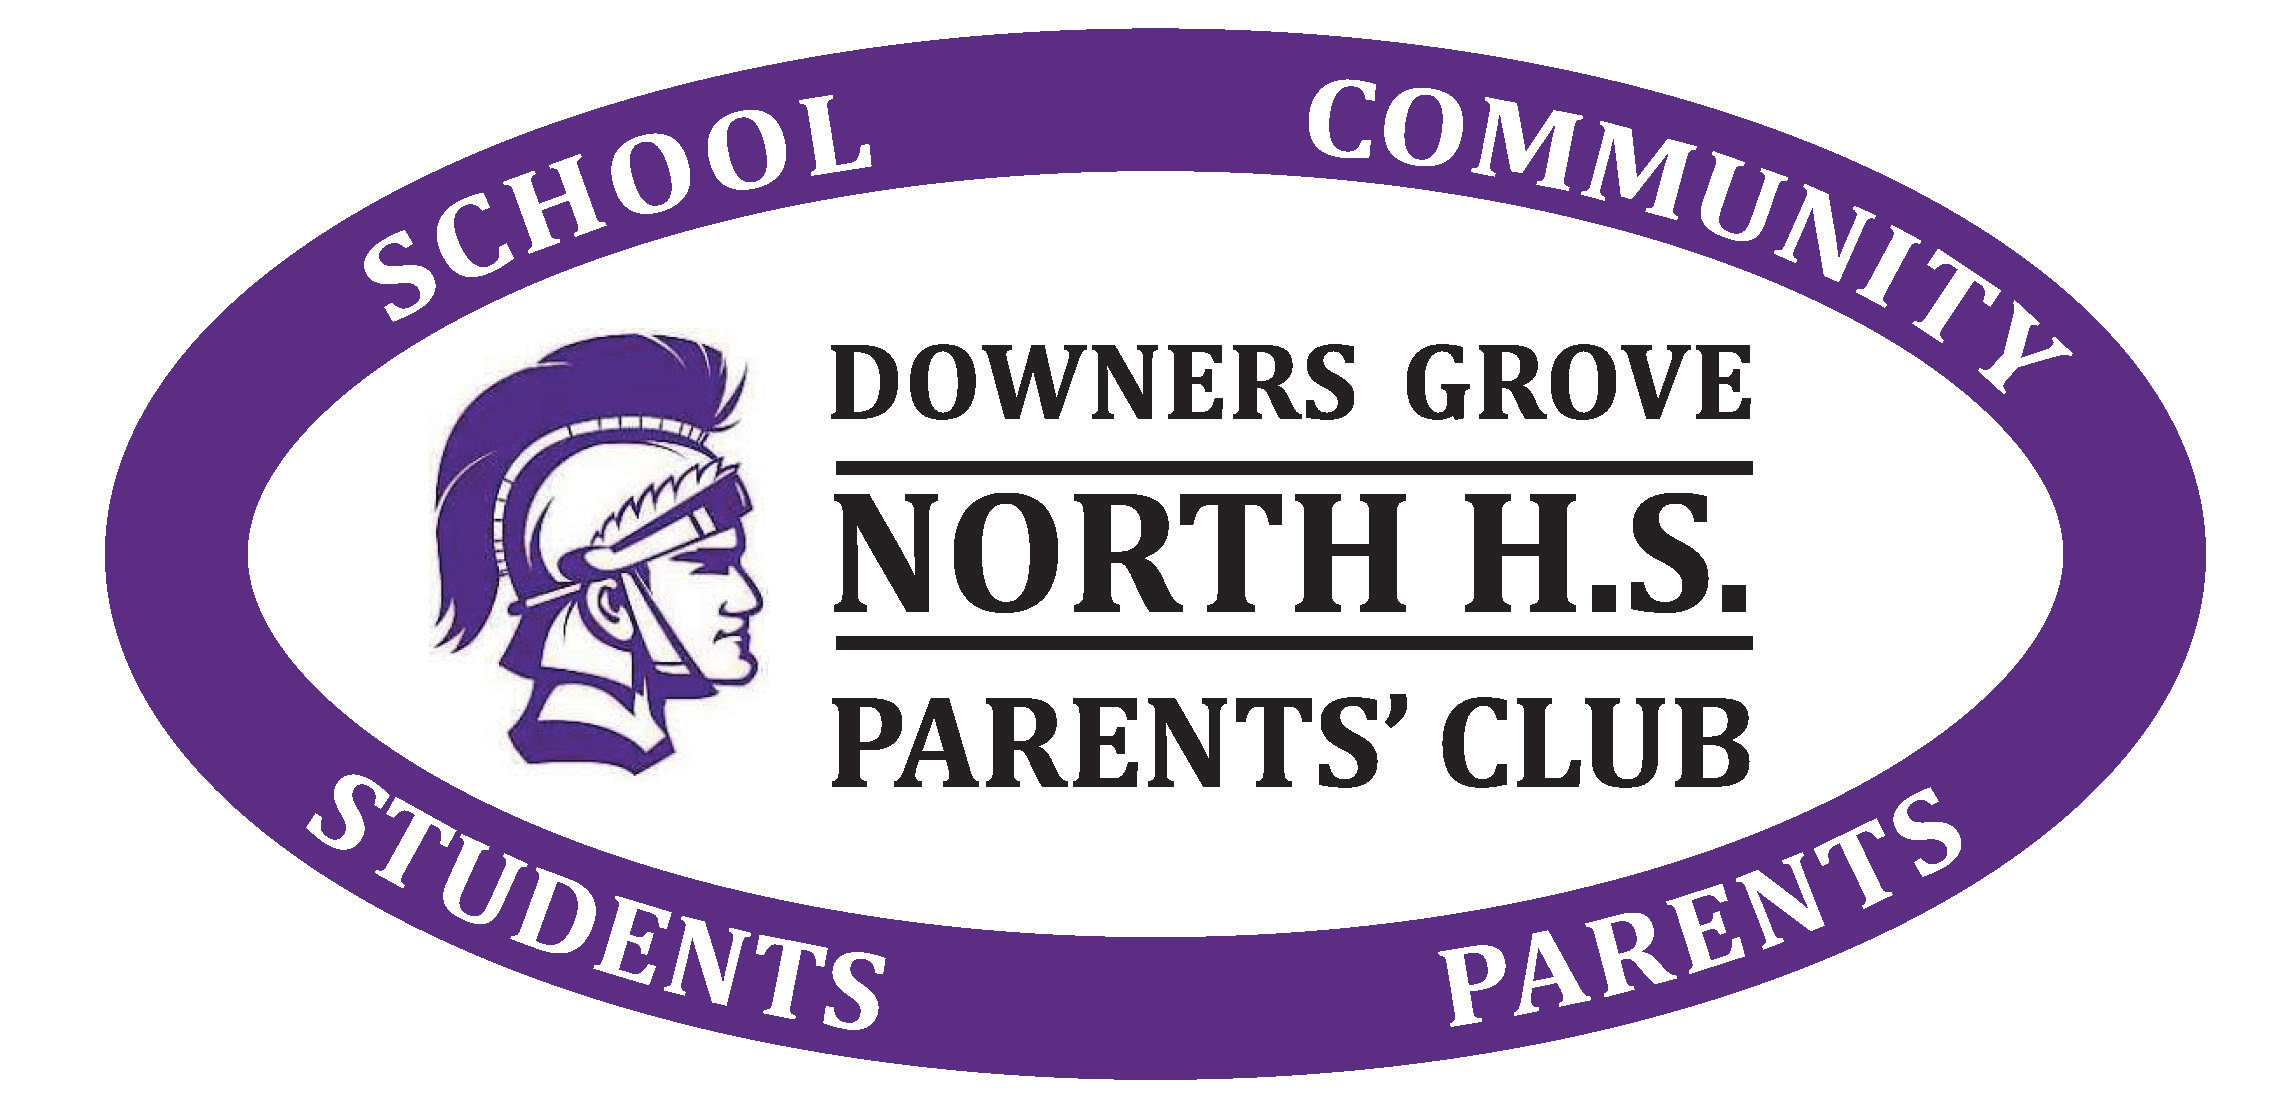 DGN_parents_club_FINAL copy (1)